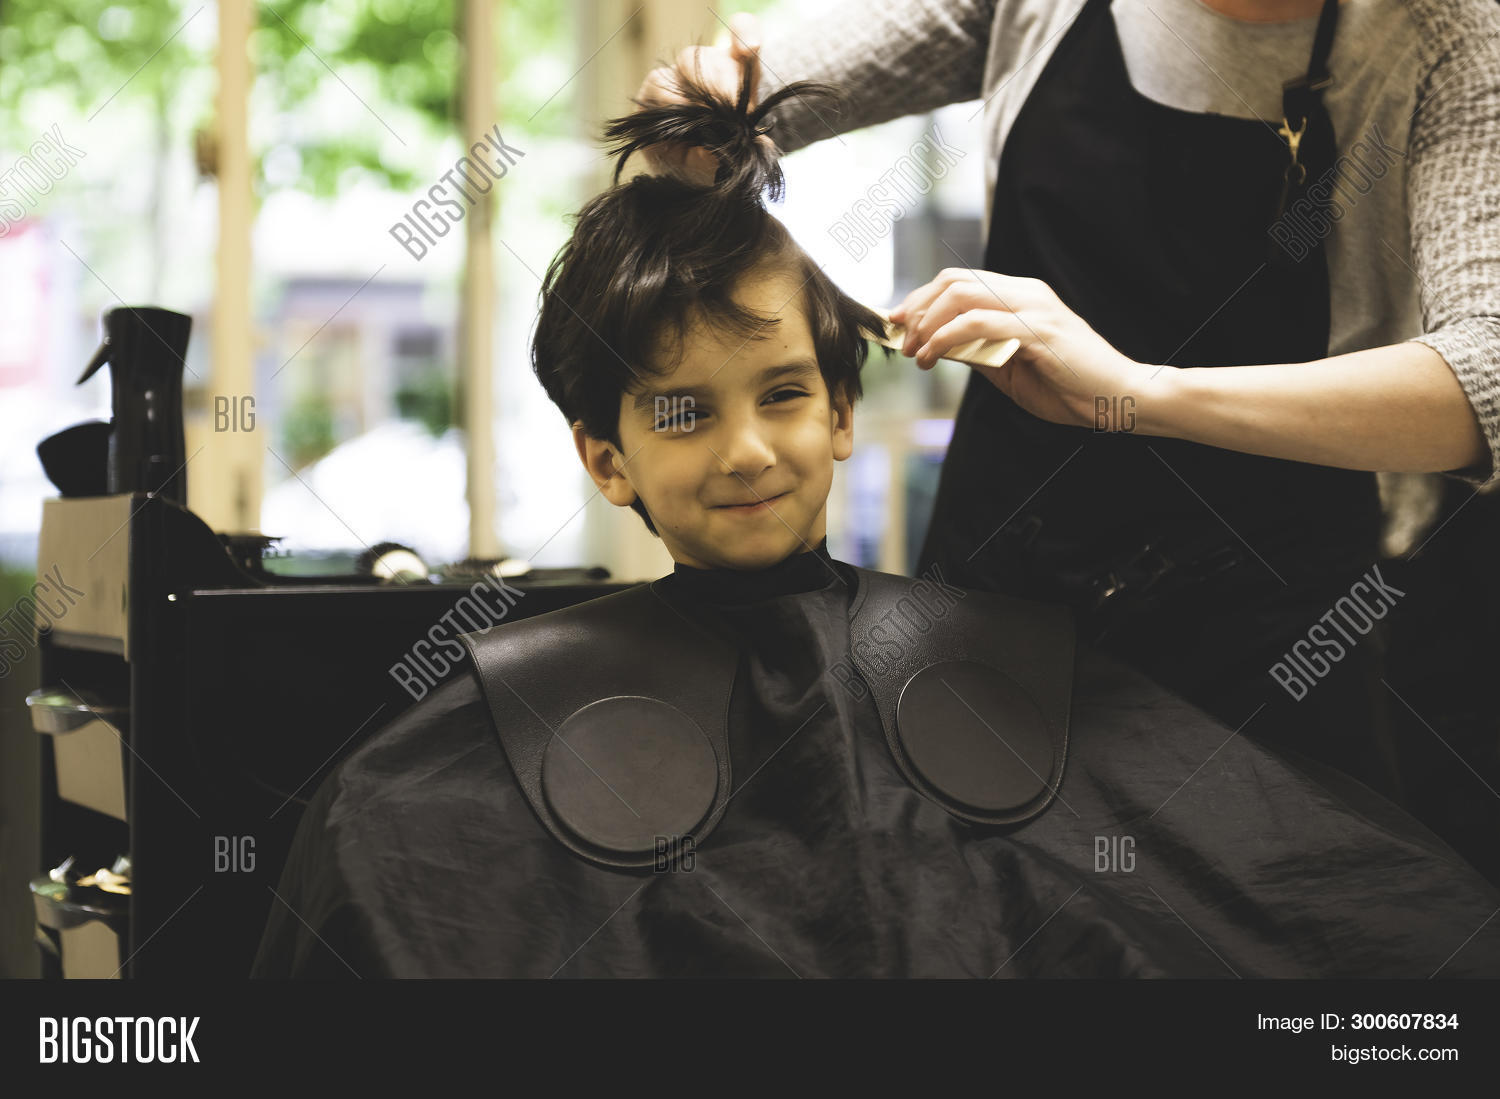 background,barber,barbershop,boy,child,childhood,client,customer,cut,cute,eyes,face,fashion,female,fun,hair,haircut,haircutting,hairdresser,hairdressing,hairstyle,hand,handsome,happy,head,kid,lifestyle,little,model,no,people,portrait,professional,real,salon,scissor,shop,sitting,smile,smiling,style,styling,stylist,trim,woman,young,youth